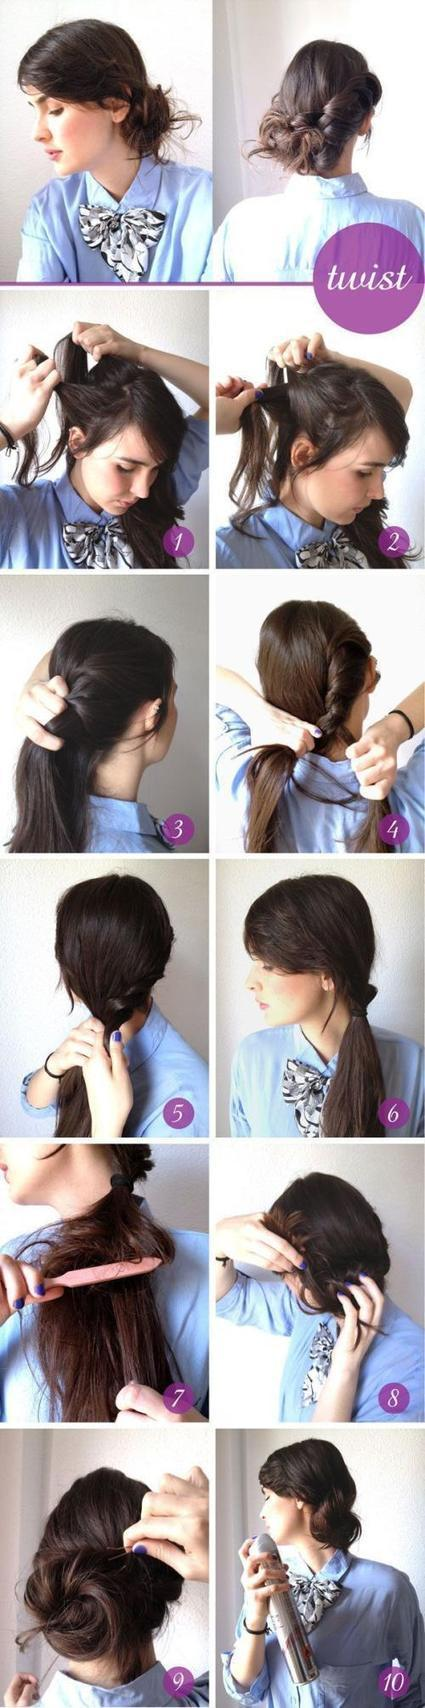 Easy & Cute Quick Do Hairstyles for Long Hair - 2014 | Mission Aveda Salon | Scoop.it